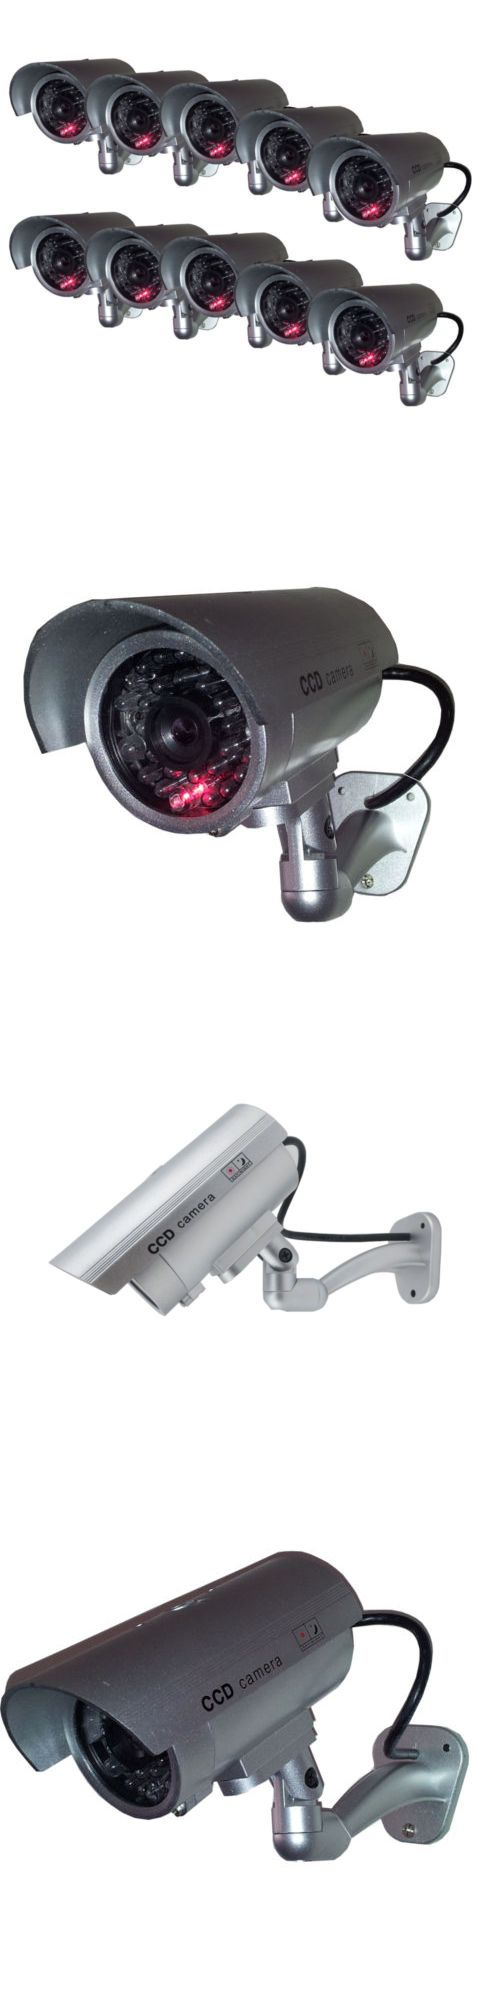 Dummy Cameras: 10 Outdoor Dummy Security Camera Fake Flashing Infrared Bullet Cctv Surveillance -> BUY IT NOW ONLY: $44.95 on eBay!